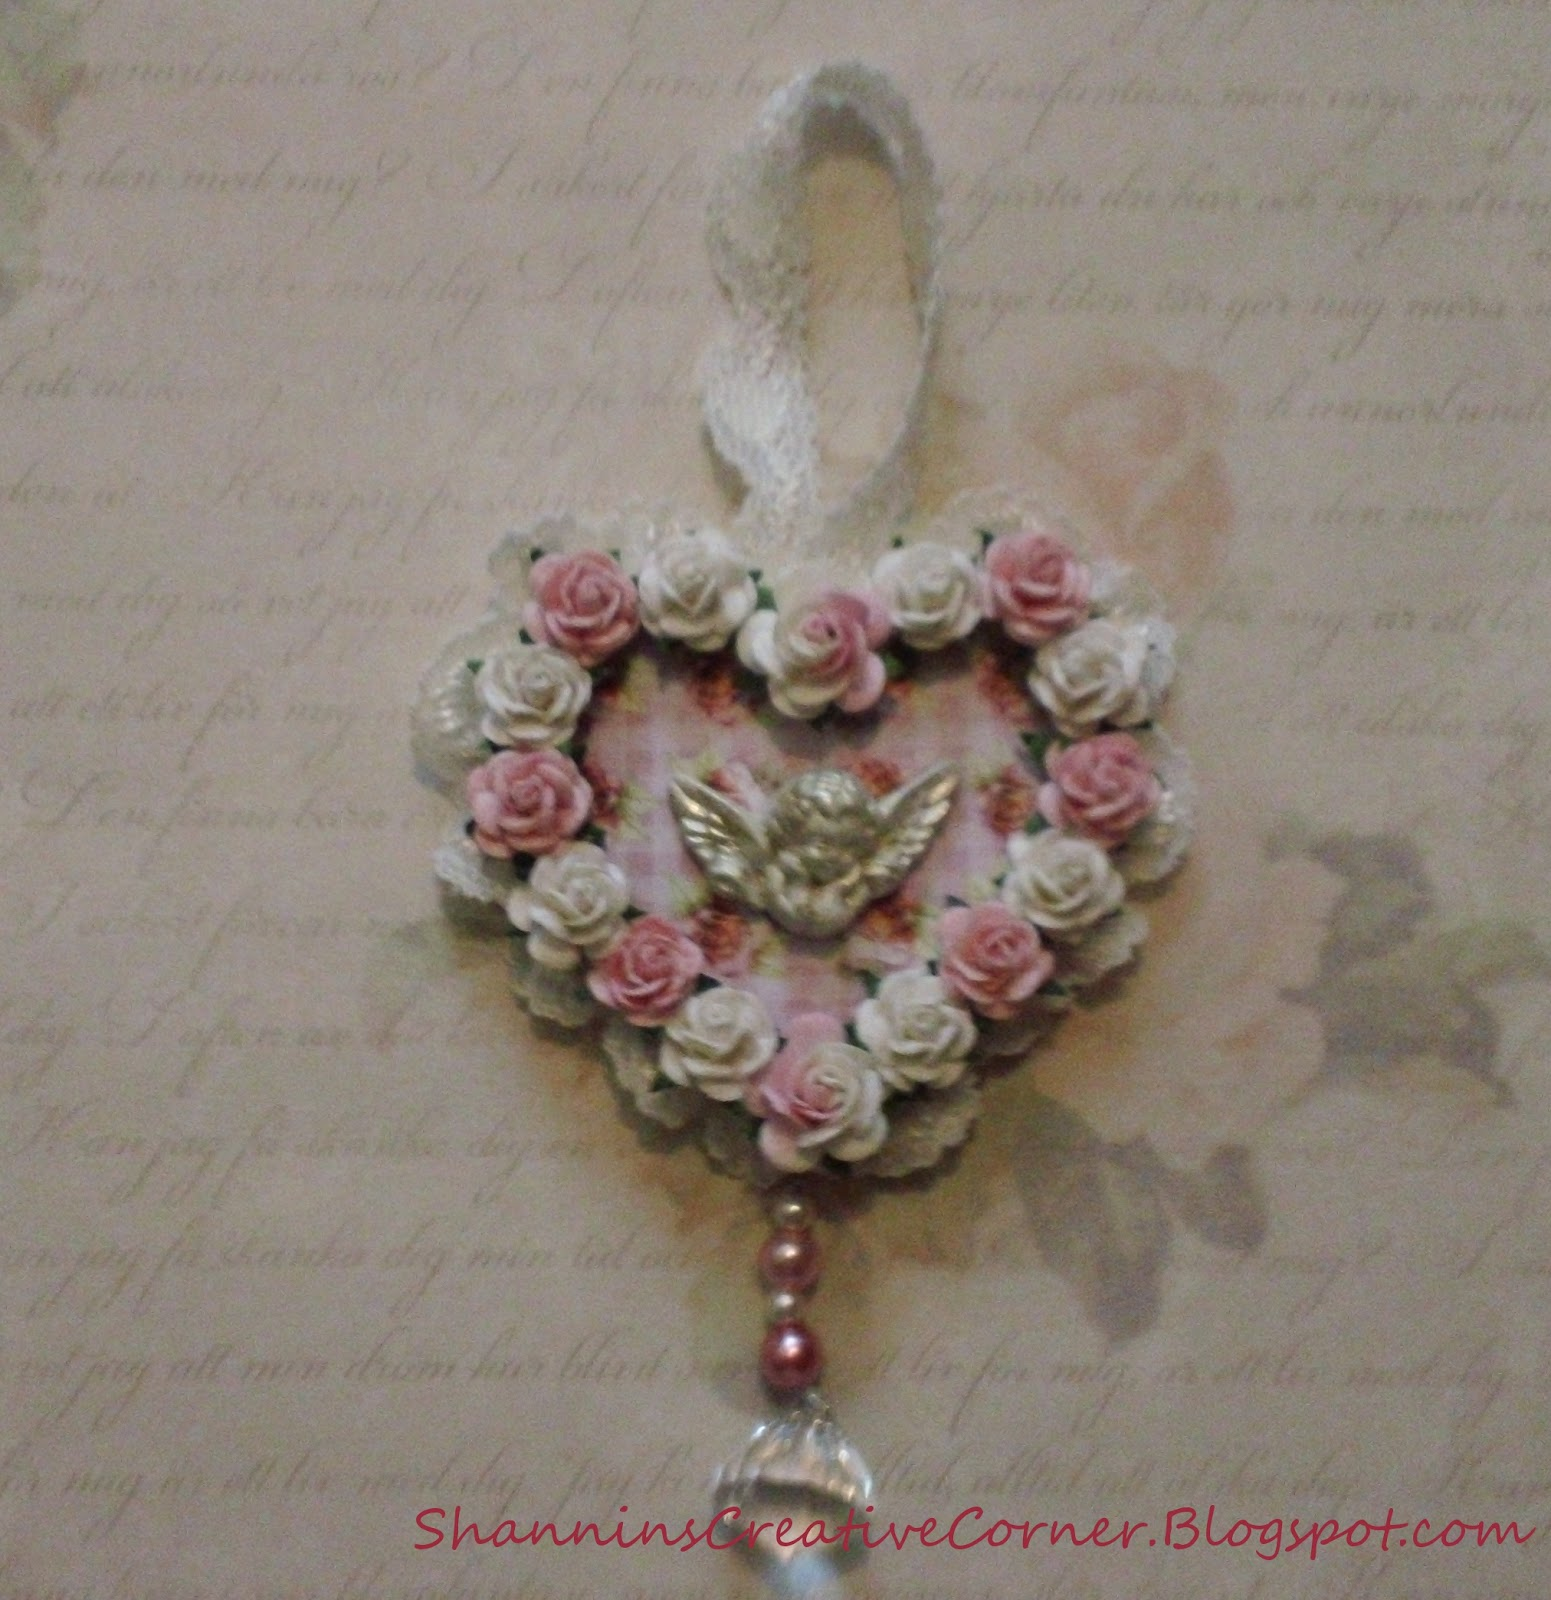 Shannins creative corner shabby chic ornament - Shabby chic christmas decorations to make ...